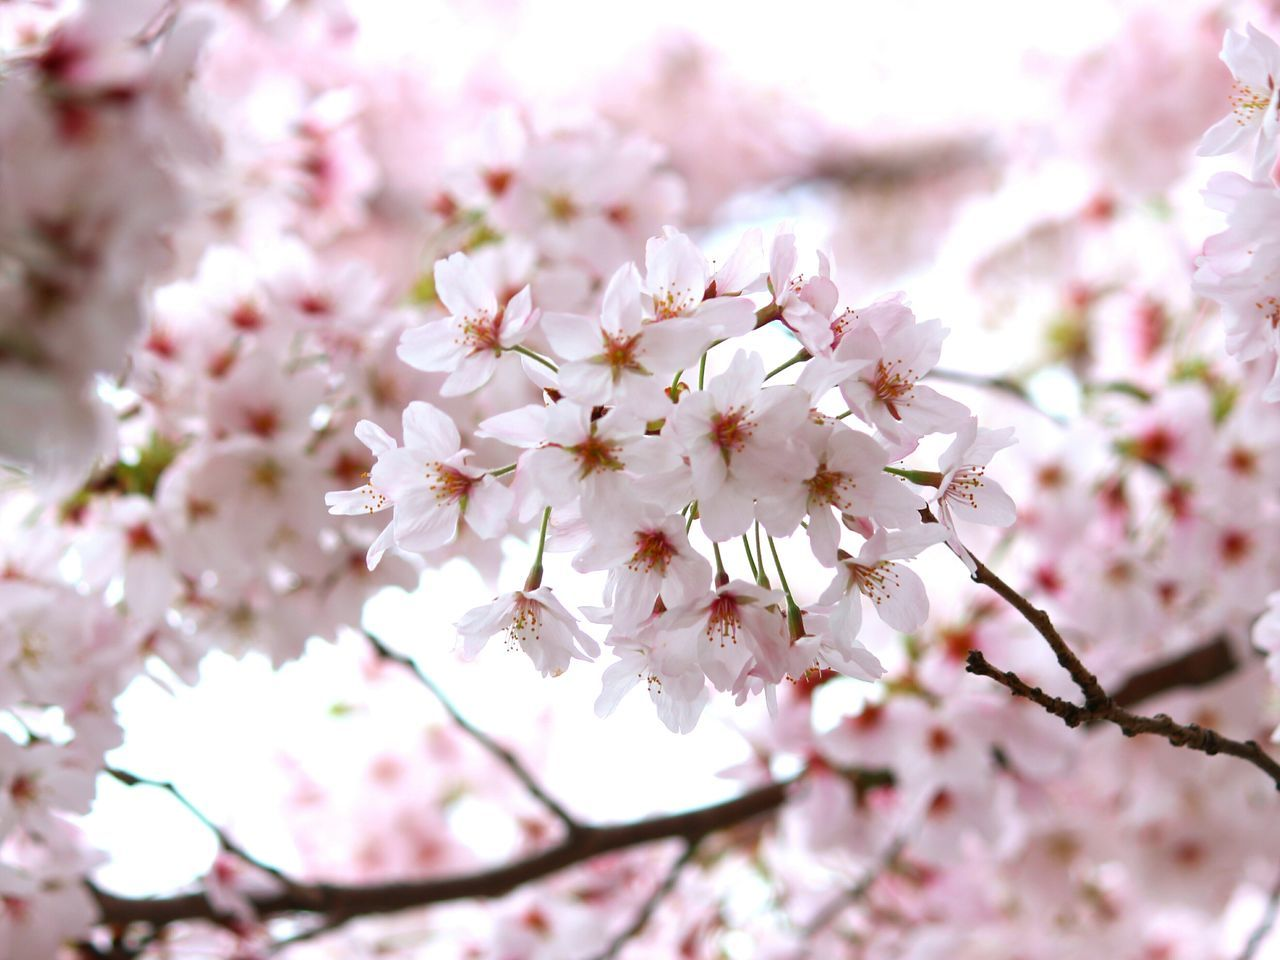 flower, fragility, blossom, cherry blossom, springtime, beauty in nature, growth, cherry tree, tree, nature, pink color, freshness, apple blossom, branch, botany, white color, petal, apple tree, no people, orchard, day, twig, close-up, selective focus, outdoors, stamen, flower head, blooming